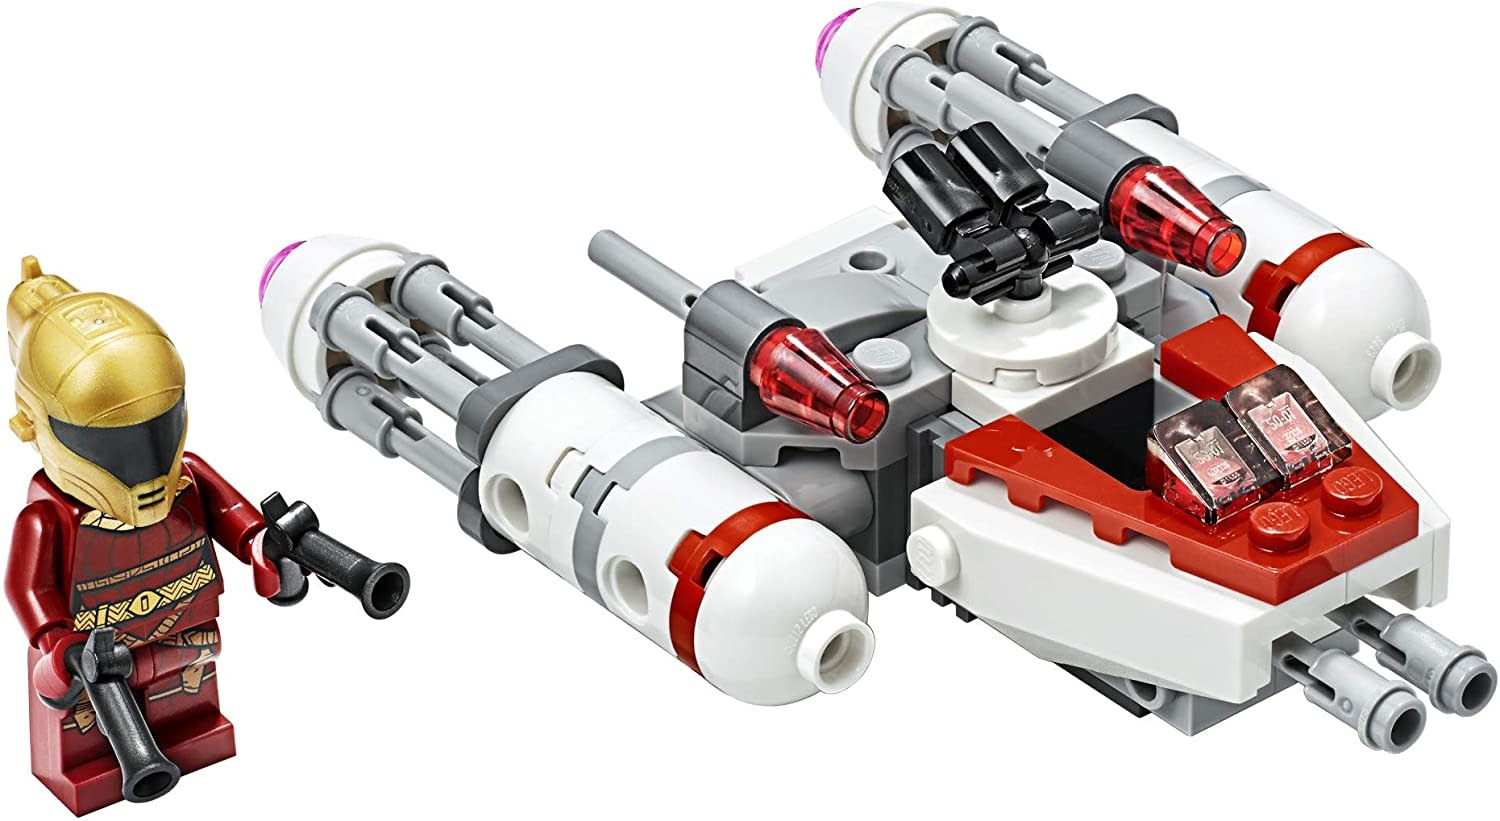 75263 Resistance Y-Wing Microfighter by LEGO Star Wars